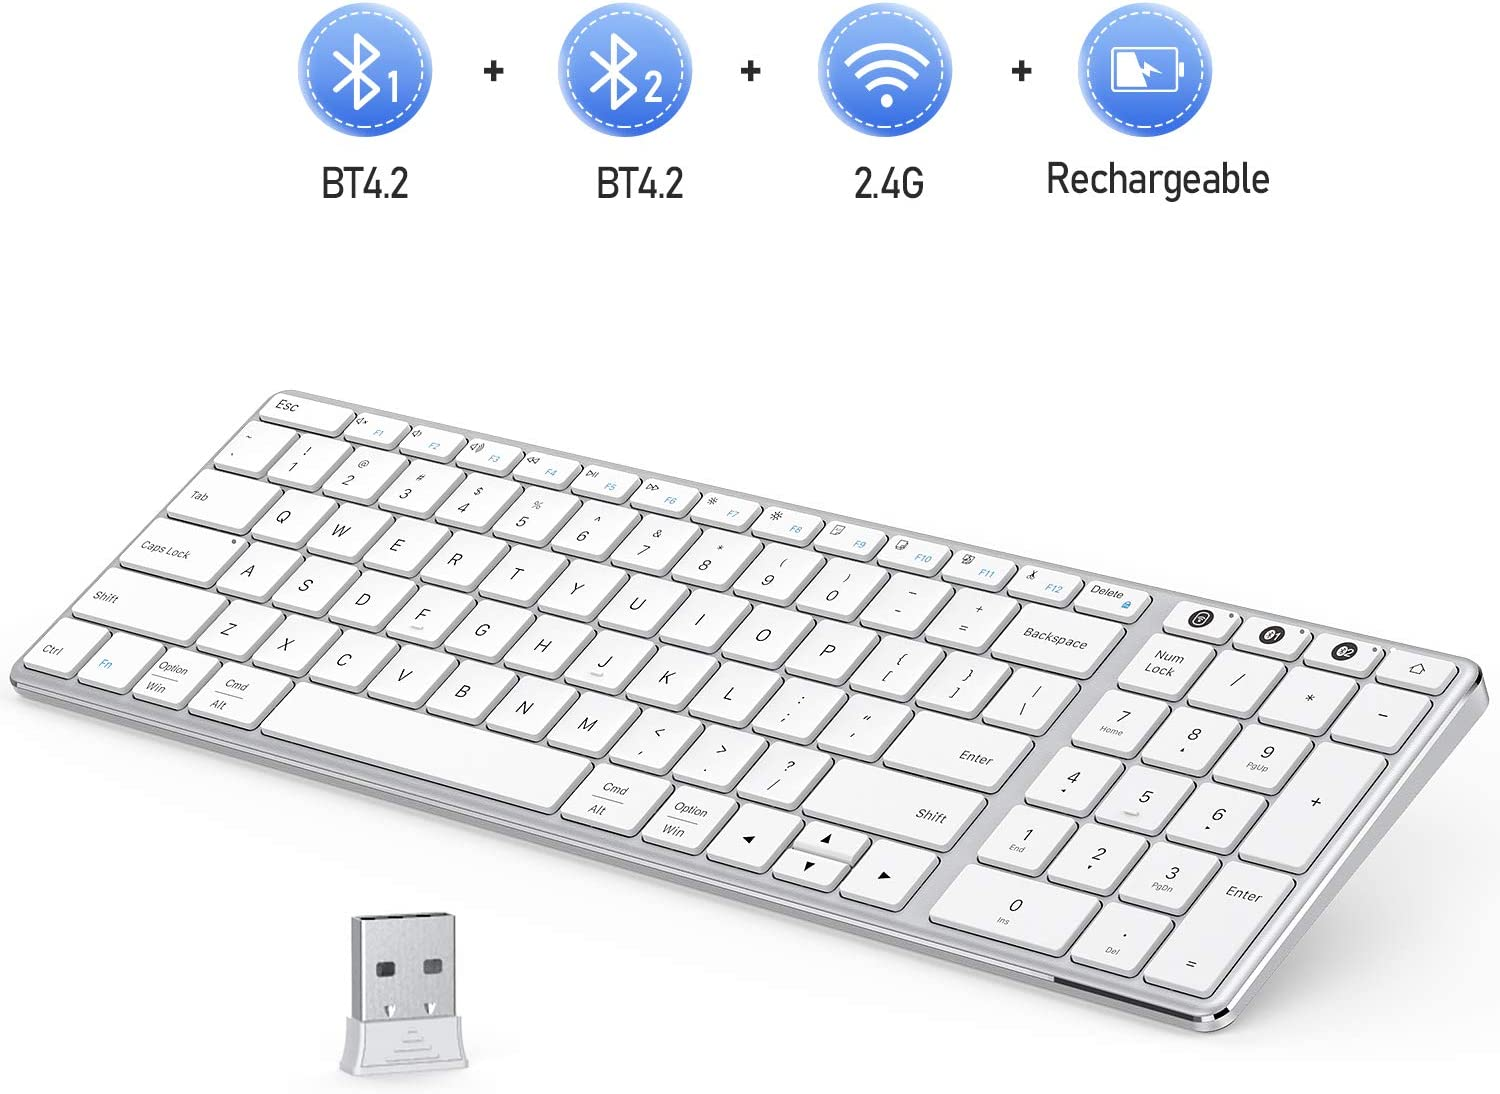 Multi-Device Bluetooth Keyboard, Jelly Comb Dual Mode Rechargeable 2.4G Wireless & Bluetooth Keyboard with Number Pad Switch to 3 Devices for PC Laptop Desktop Tablet Windows iOS Android-White Silver